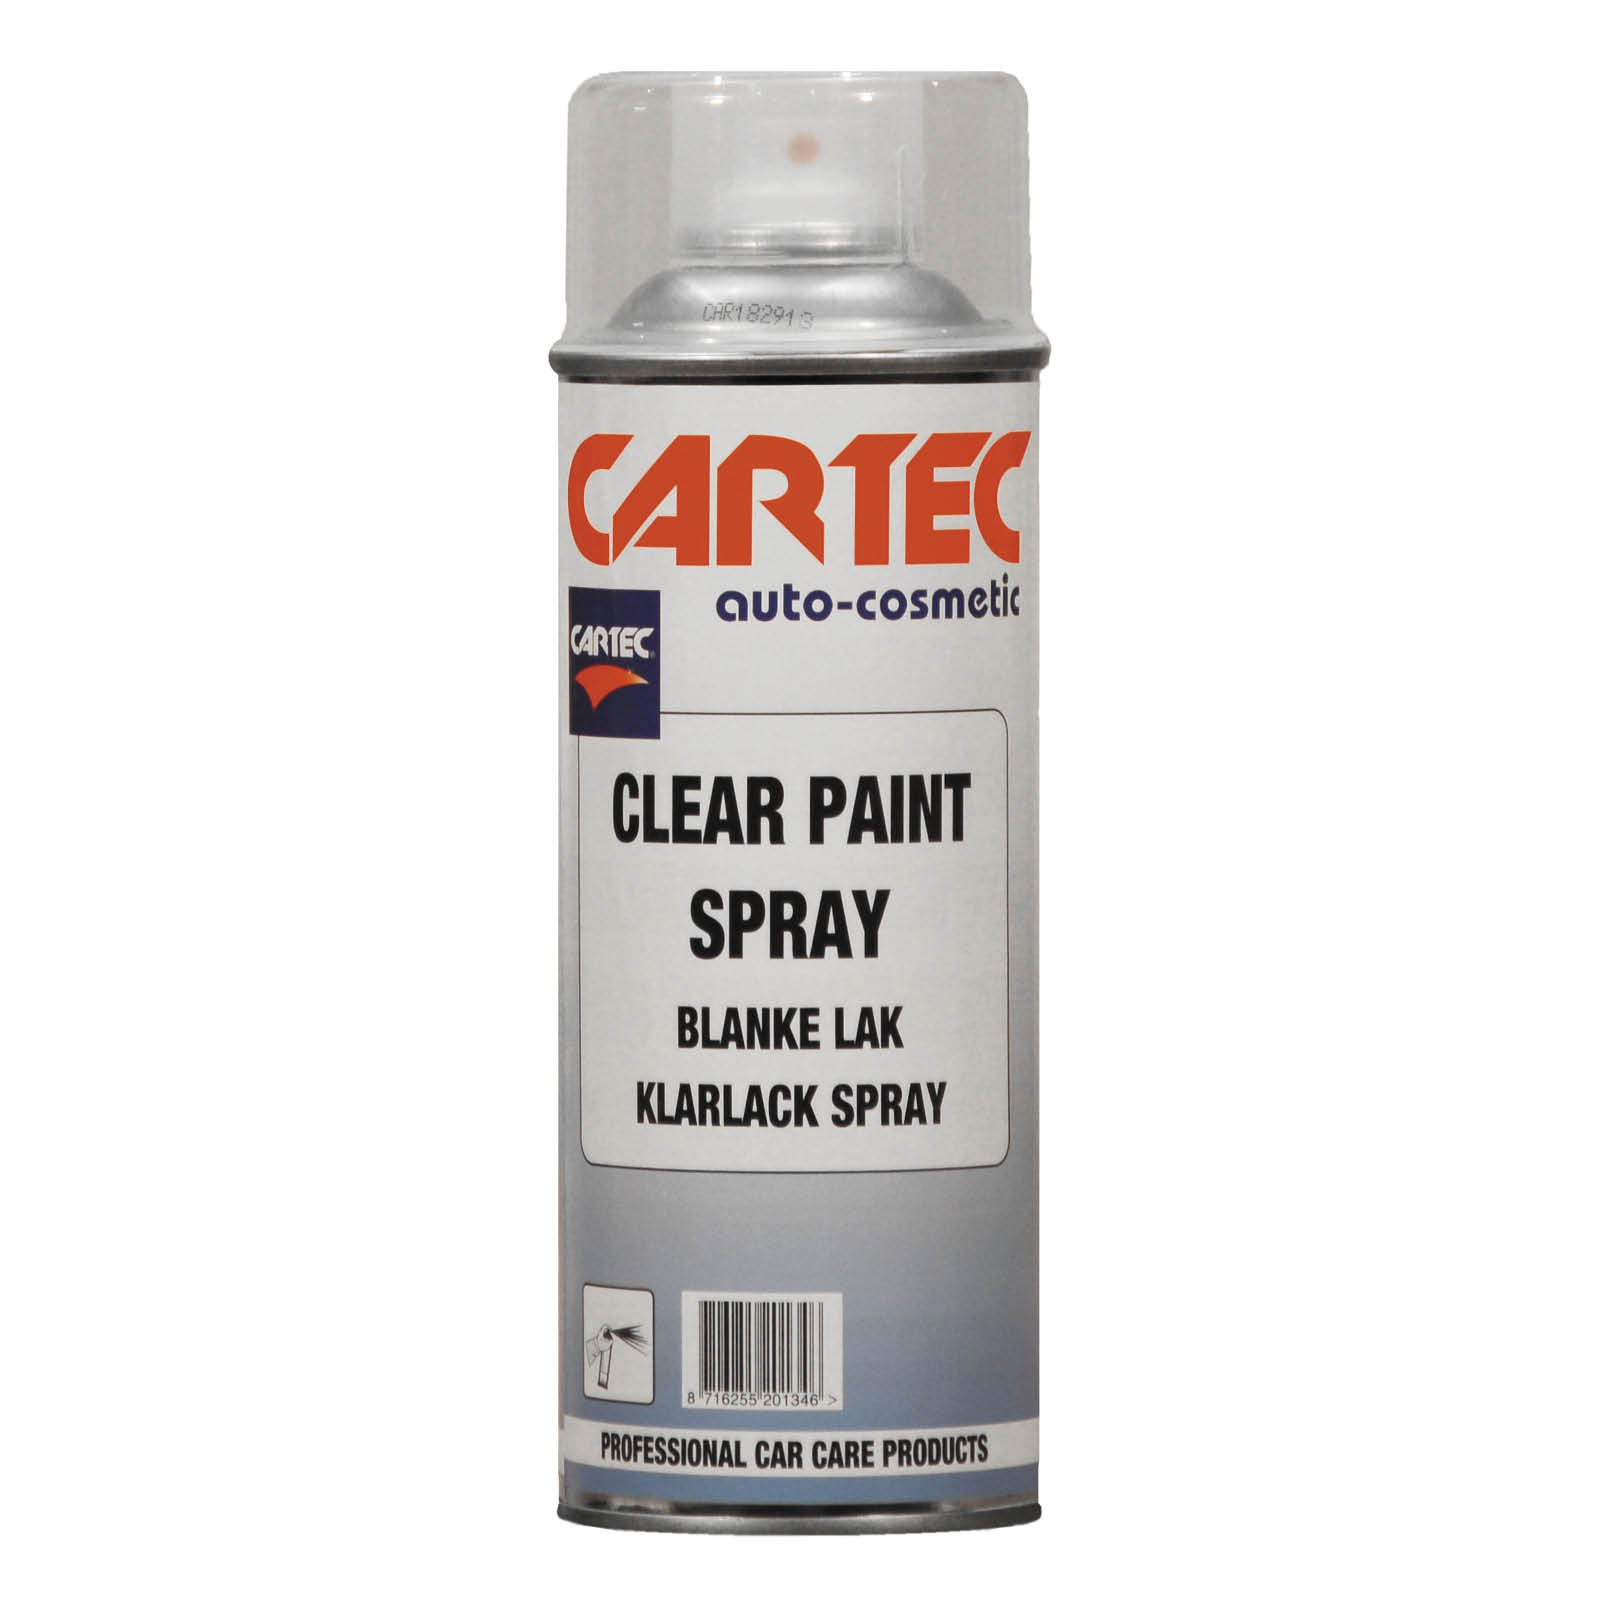 Clear Paint Spray